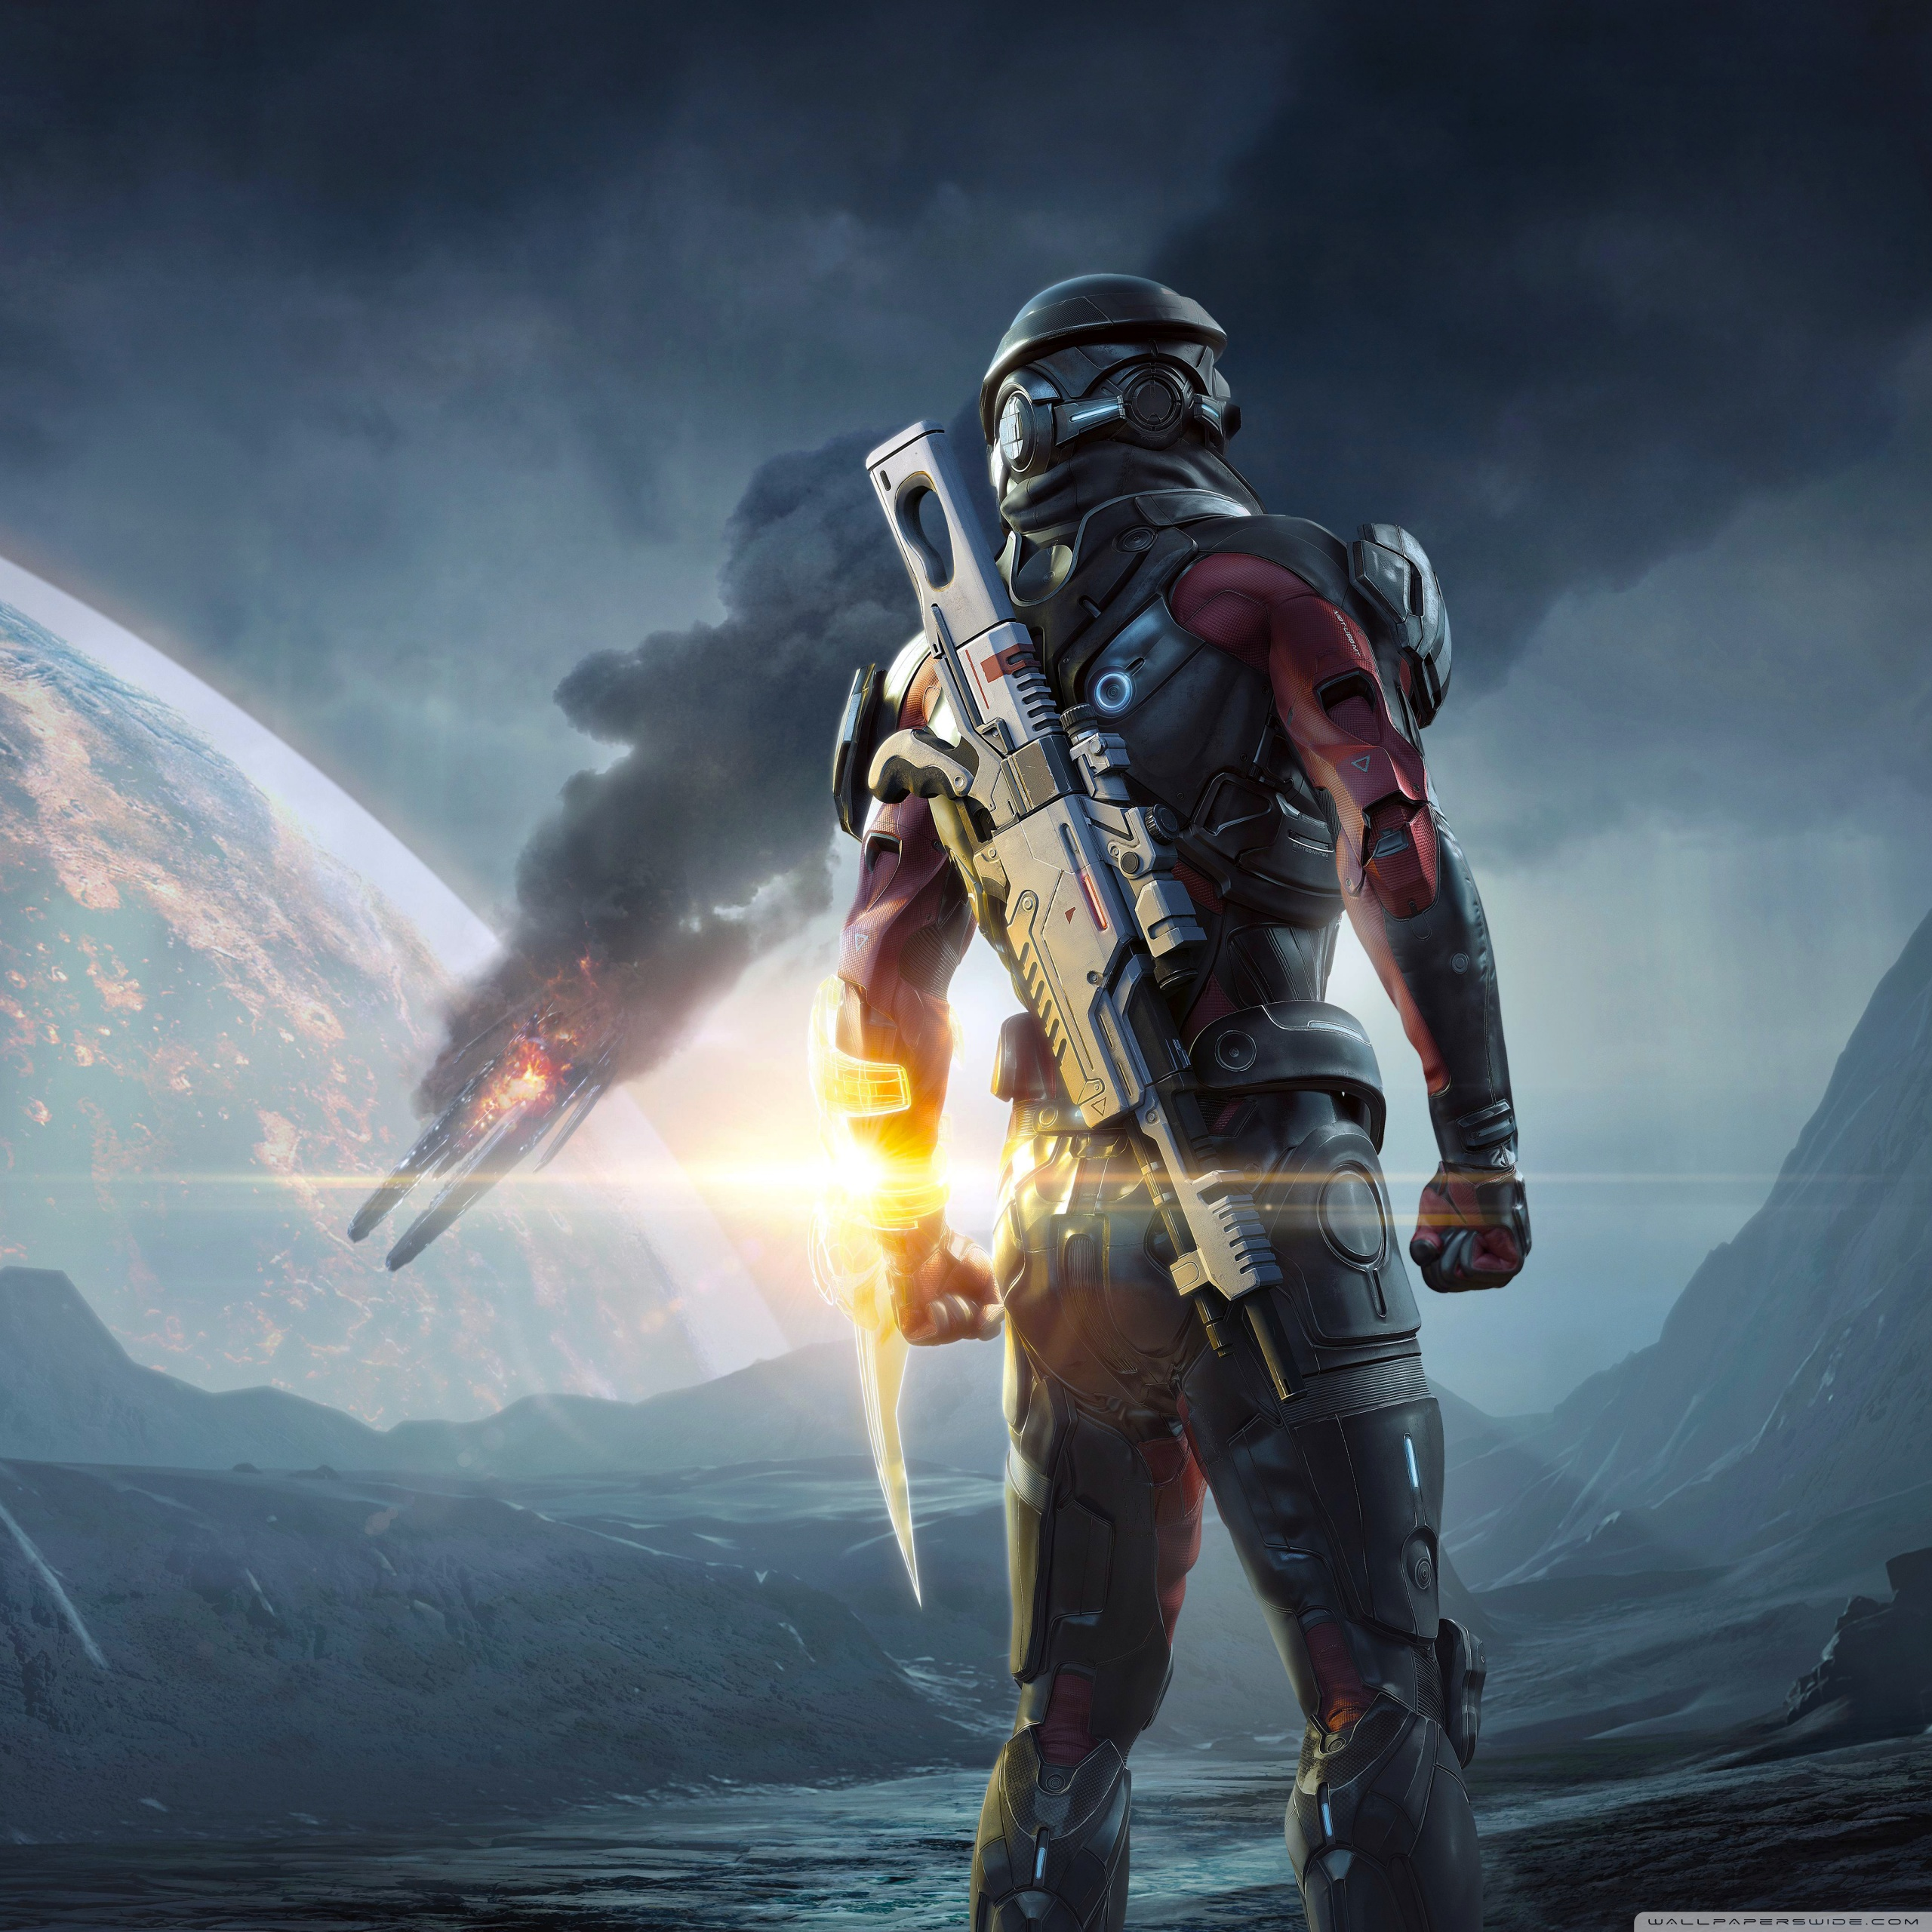 Mass Effect Andromeda 2017 Video Game 3d Hd Wallpapers ...